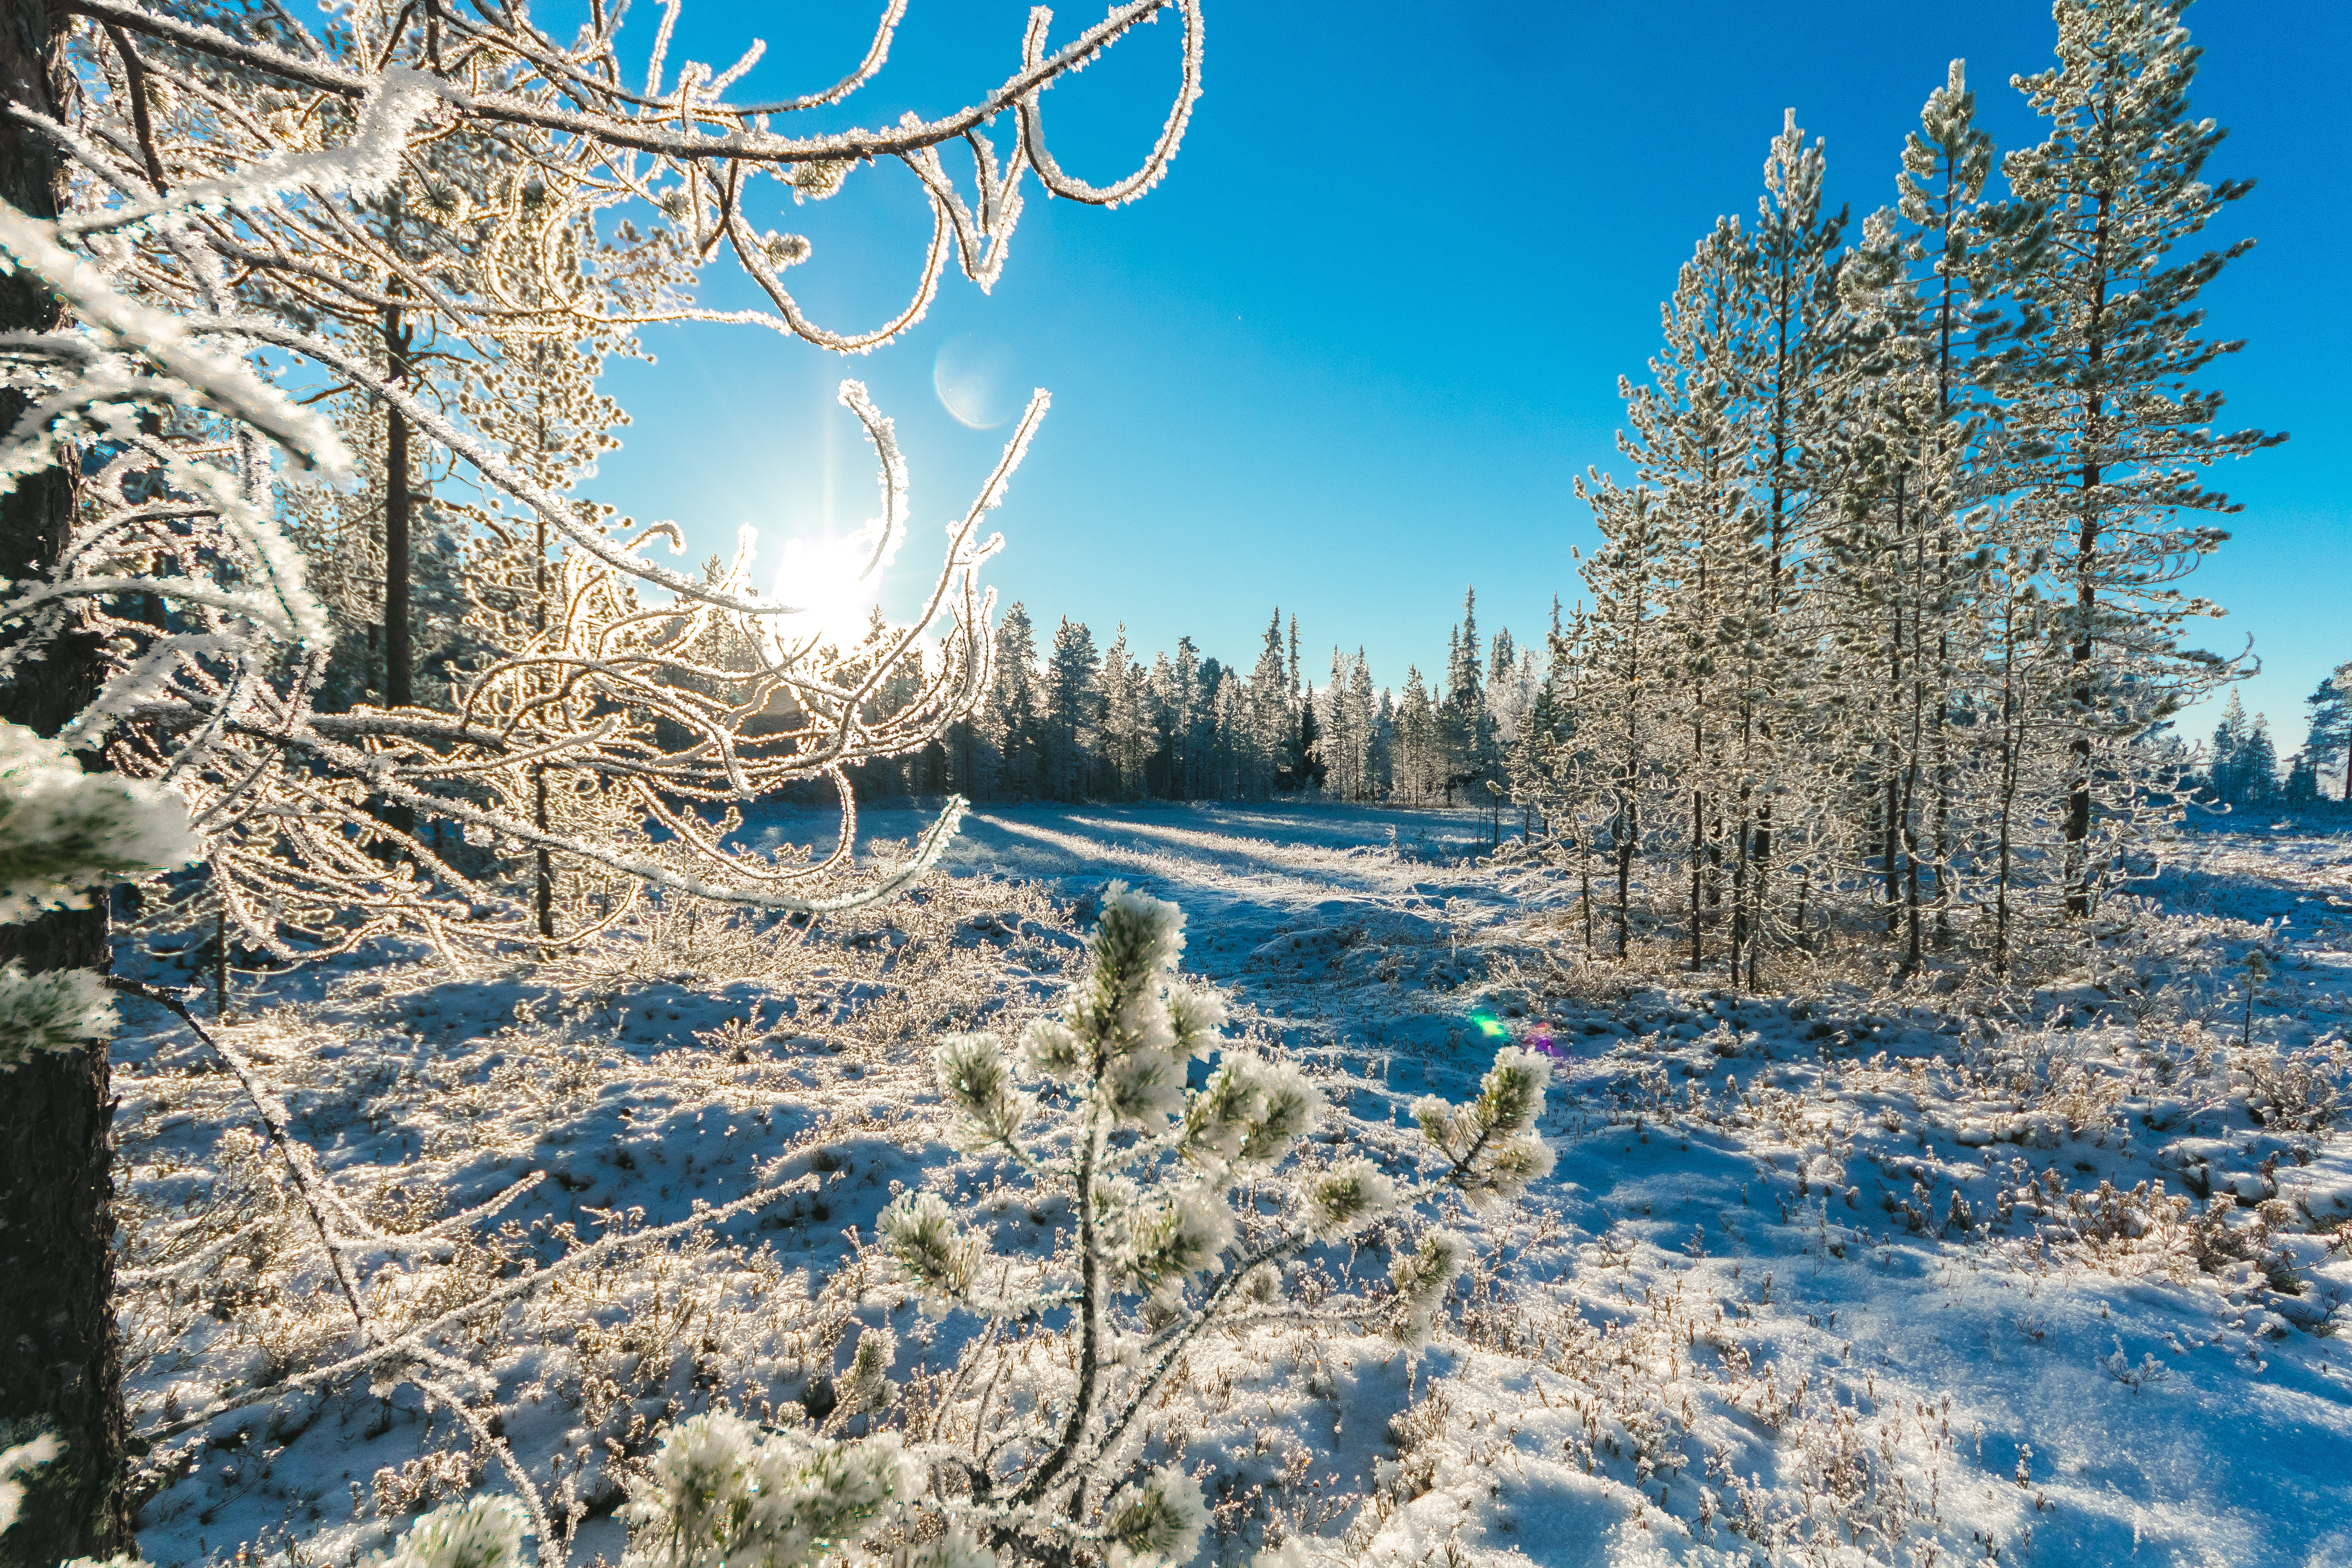 Pine Trees in Winter, Branches, Pines, Winter landscape, Winter, HQ Photo